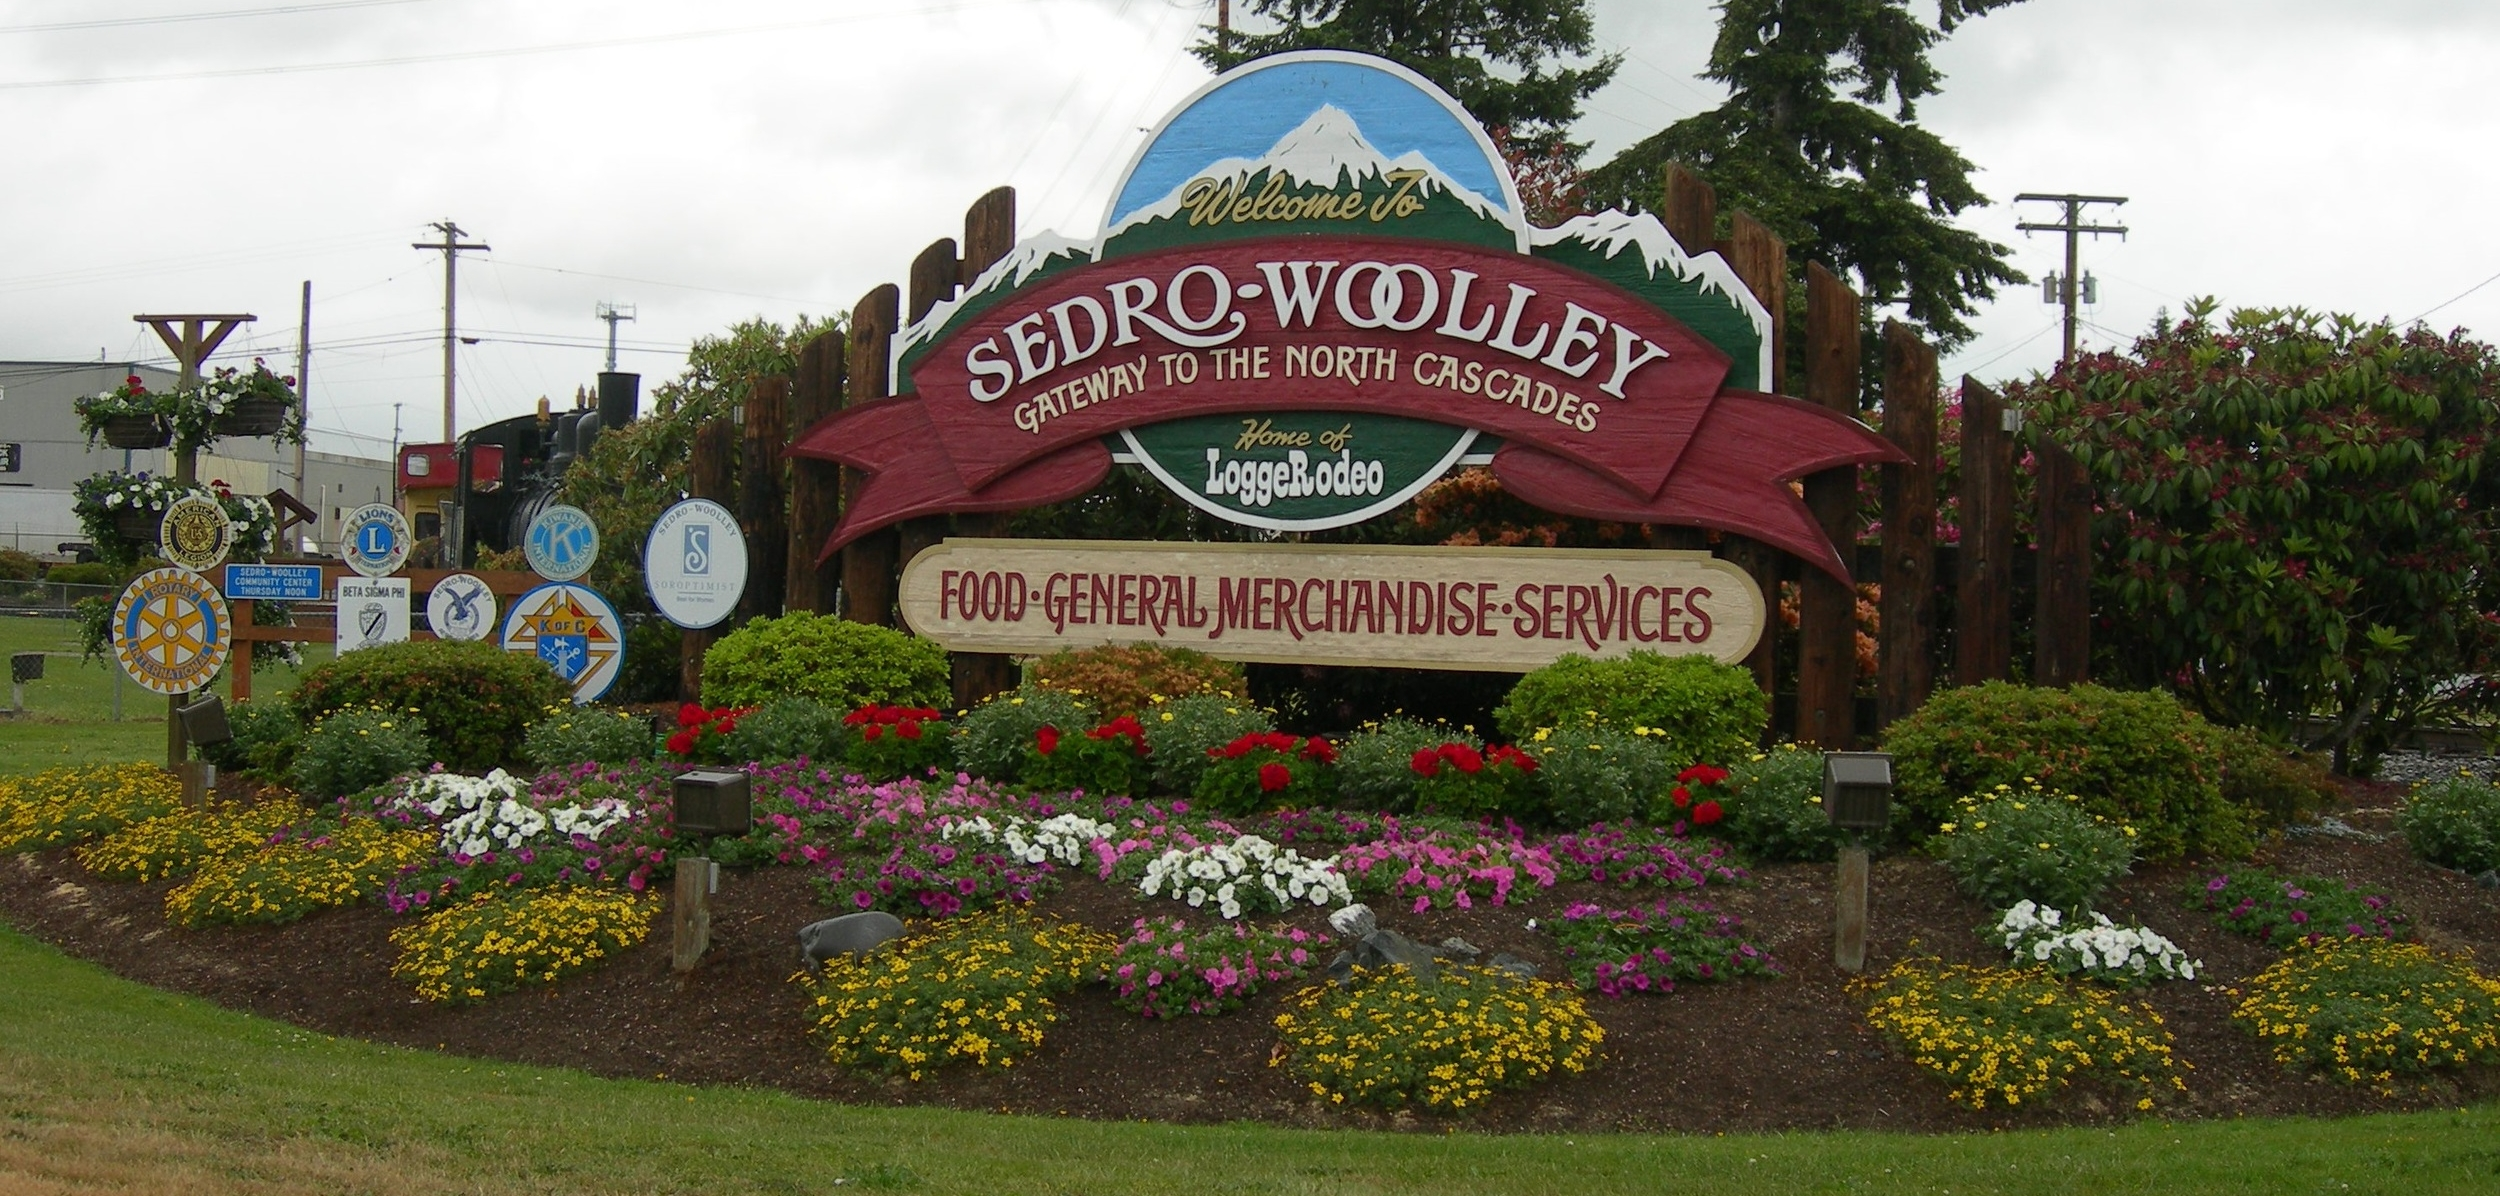 Welcome to Sedro-Woolley by Jimmy Emerson (CC)